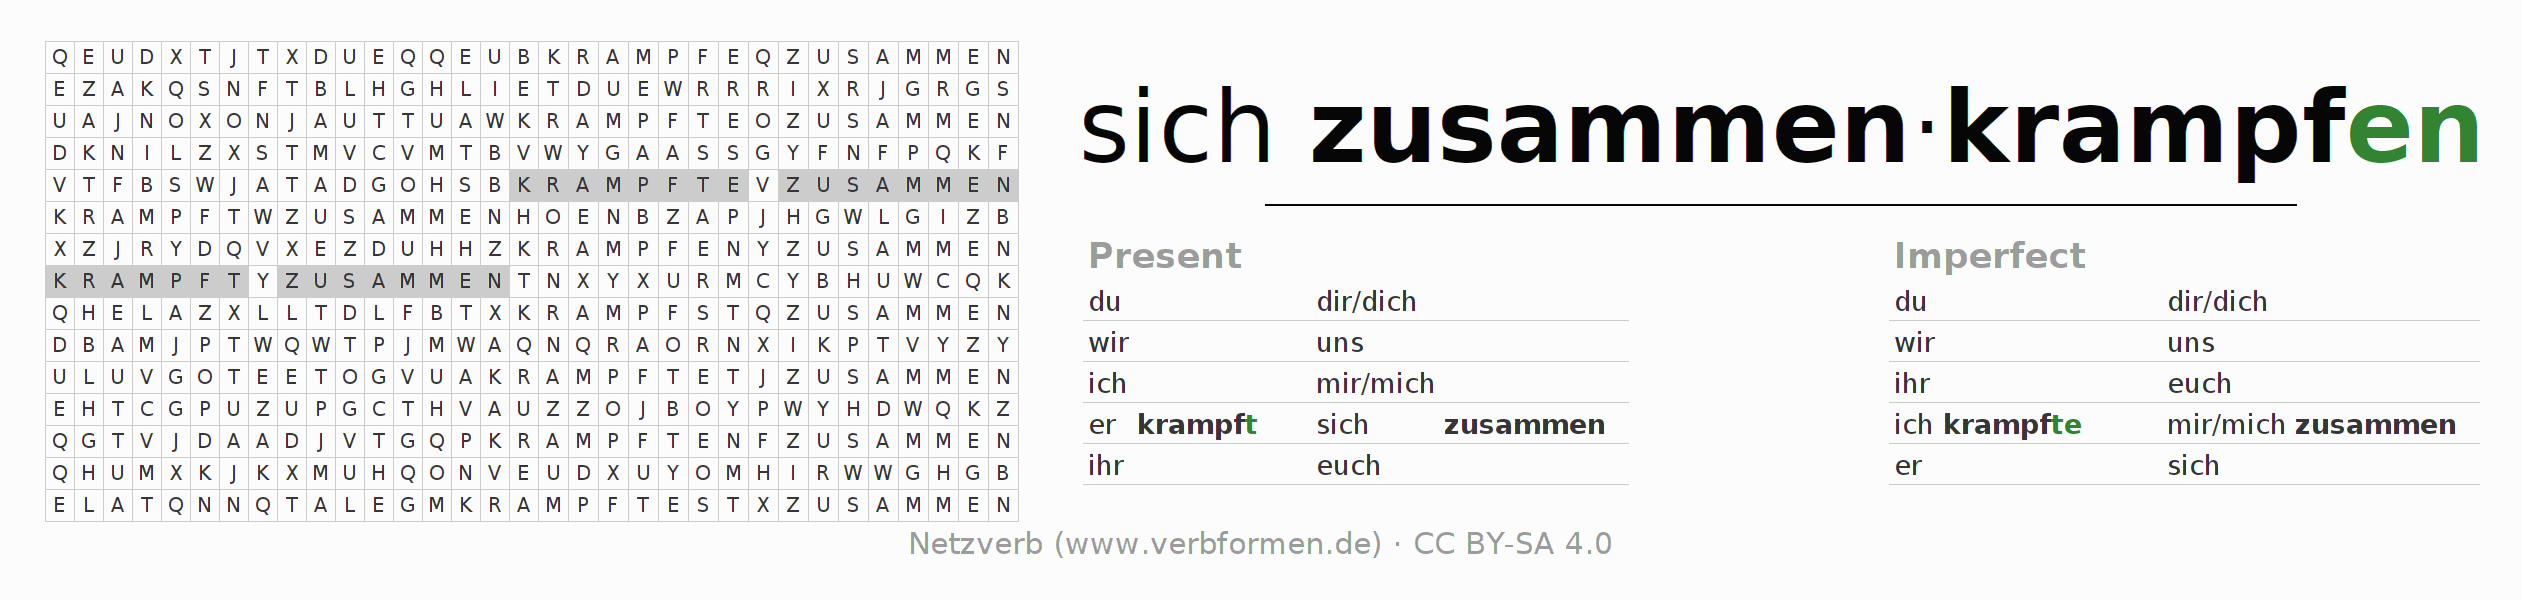 Word search puzzle for the conjugation of the verb sich zusammenkrampfen